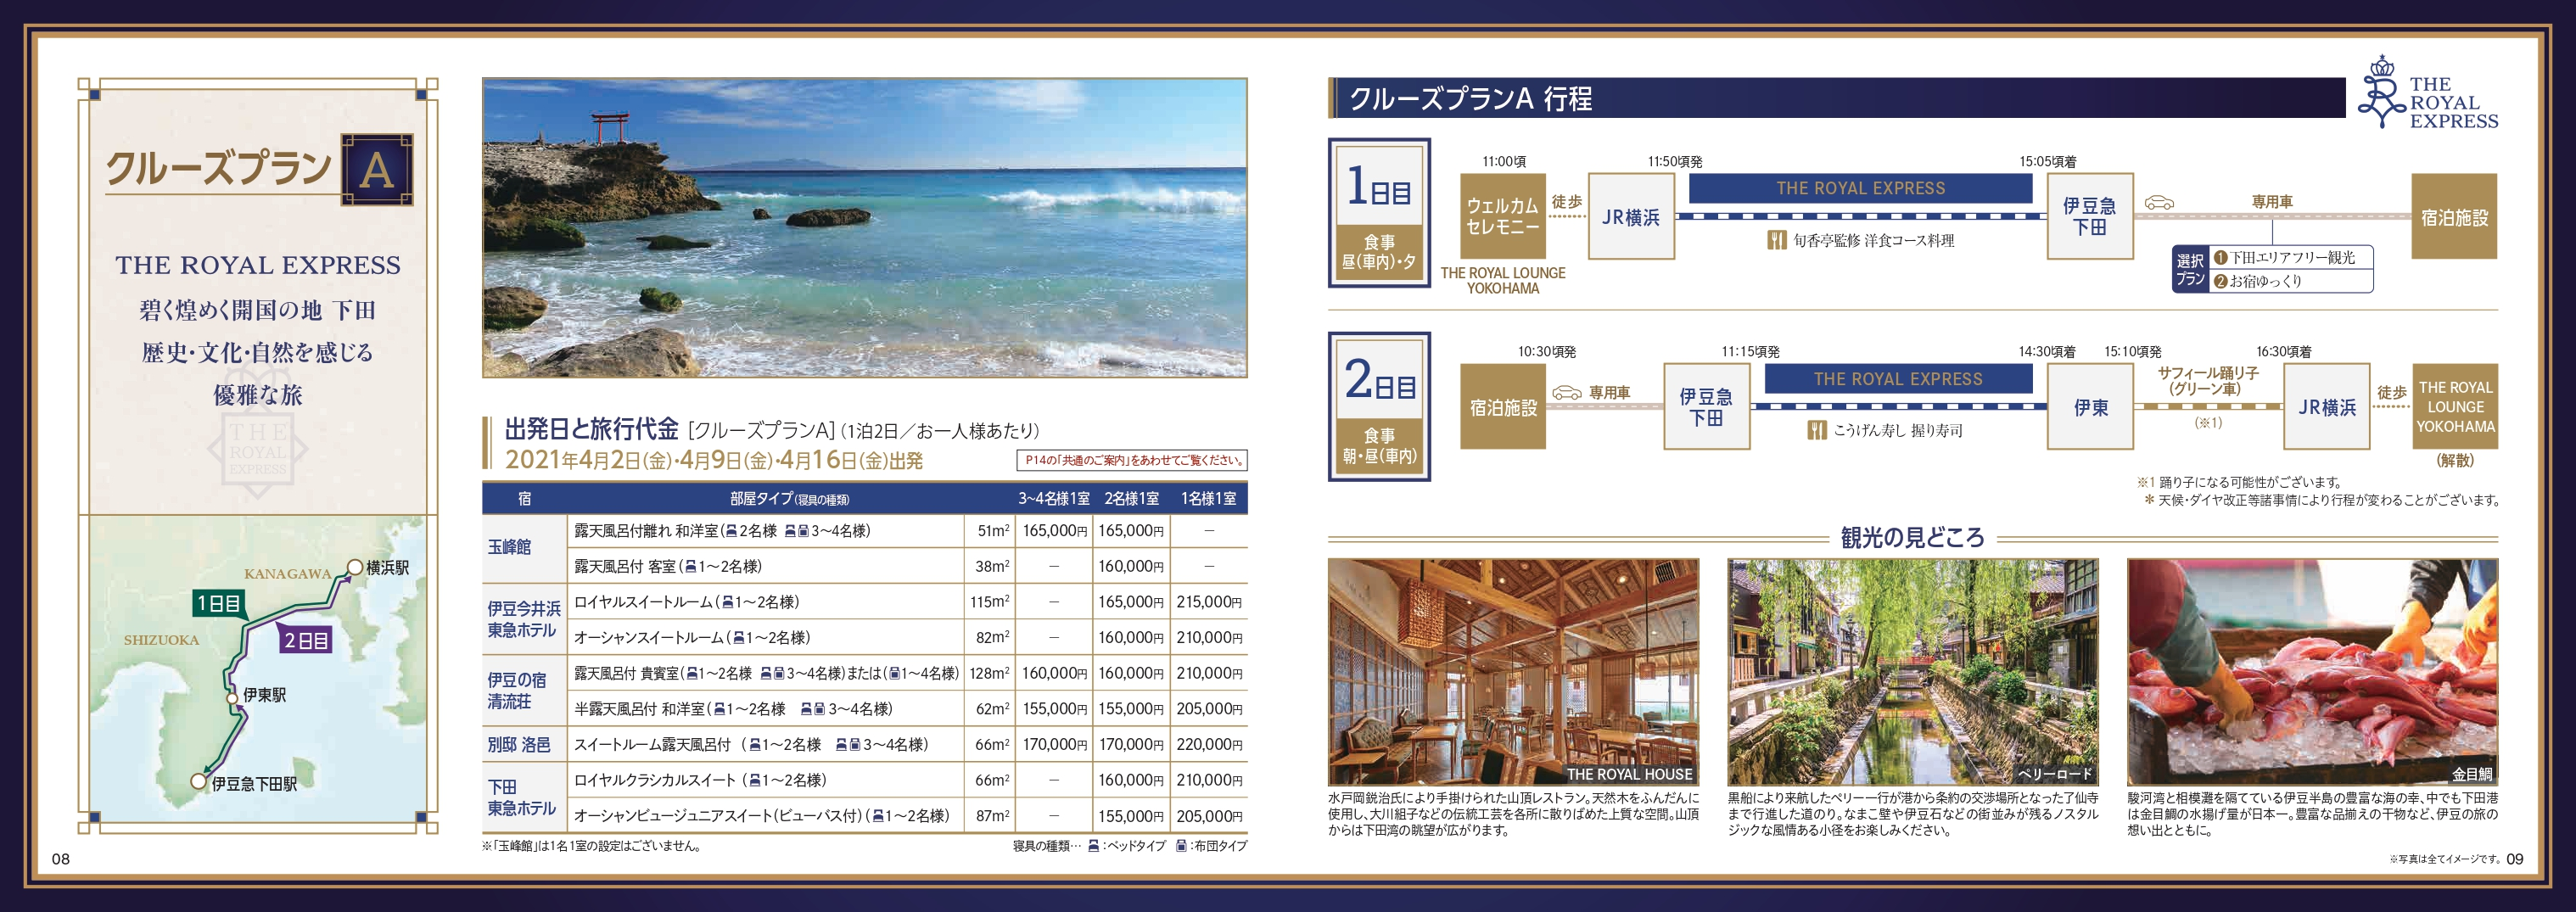 schedule_cruise_plan_a_page-0001